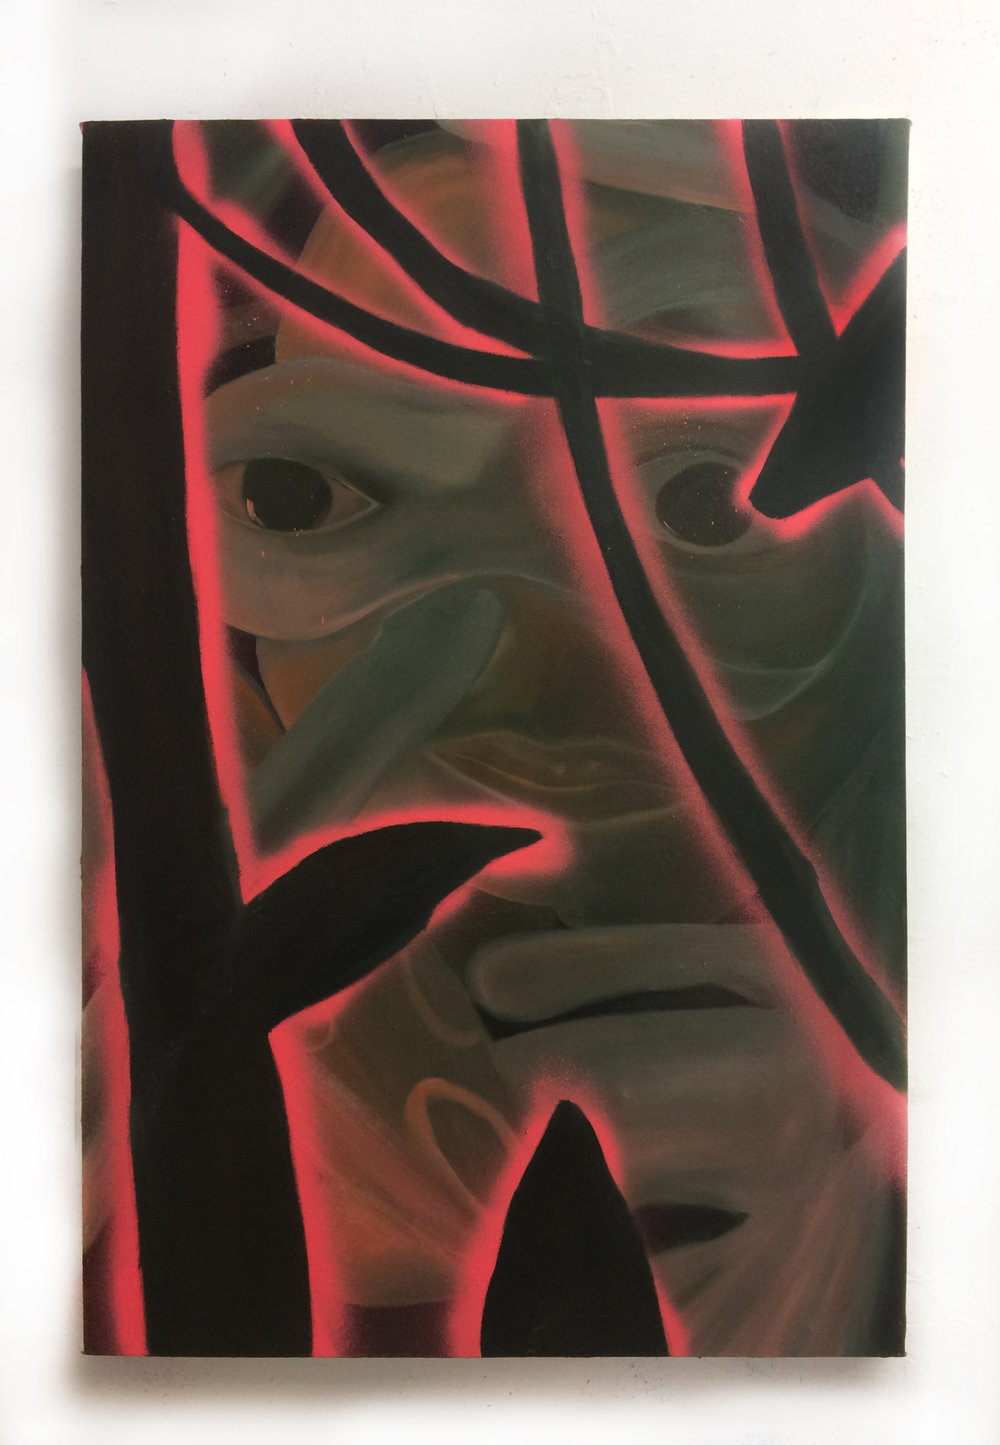 Claire Scherzinger, Afterburner--no spirit lingering, 2016, oil and spray paint on canvas, 36 x 24 in.